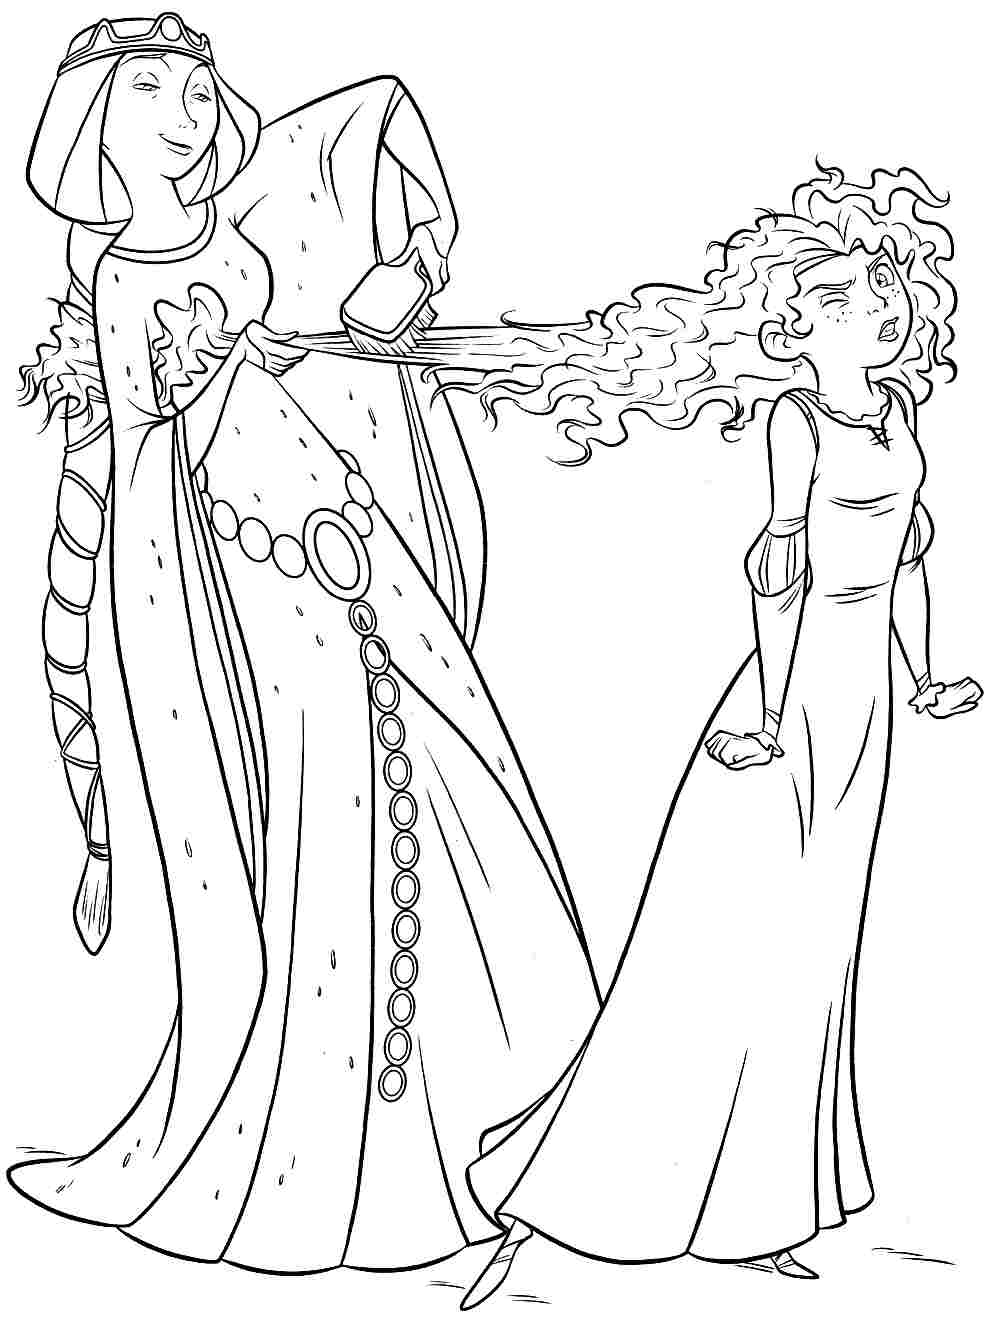 Disney Brave Coloring Pages At Getdrawings Com Free For Personal